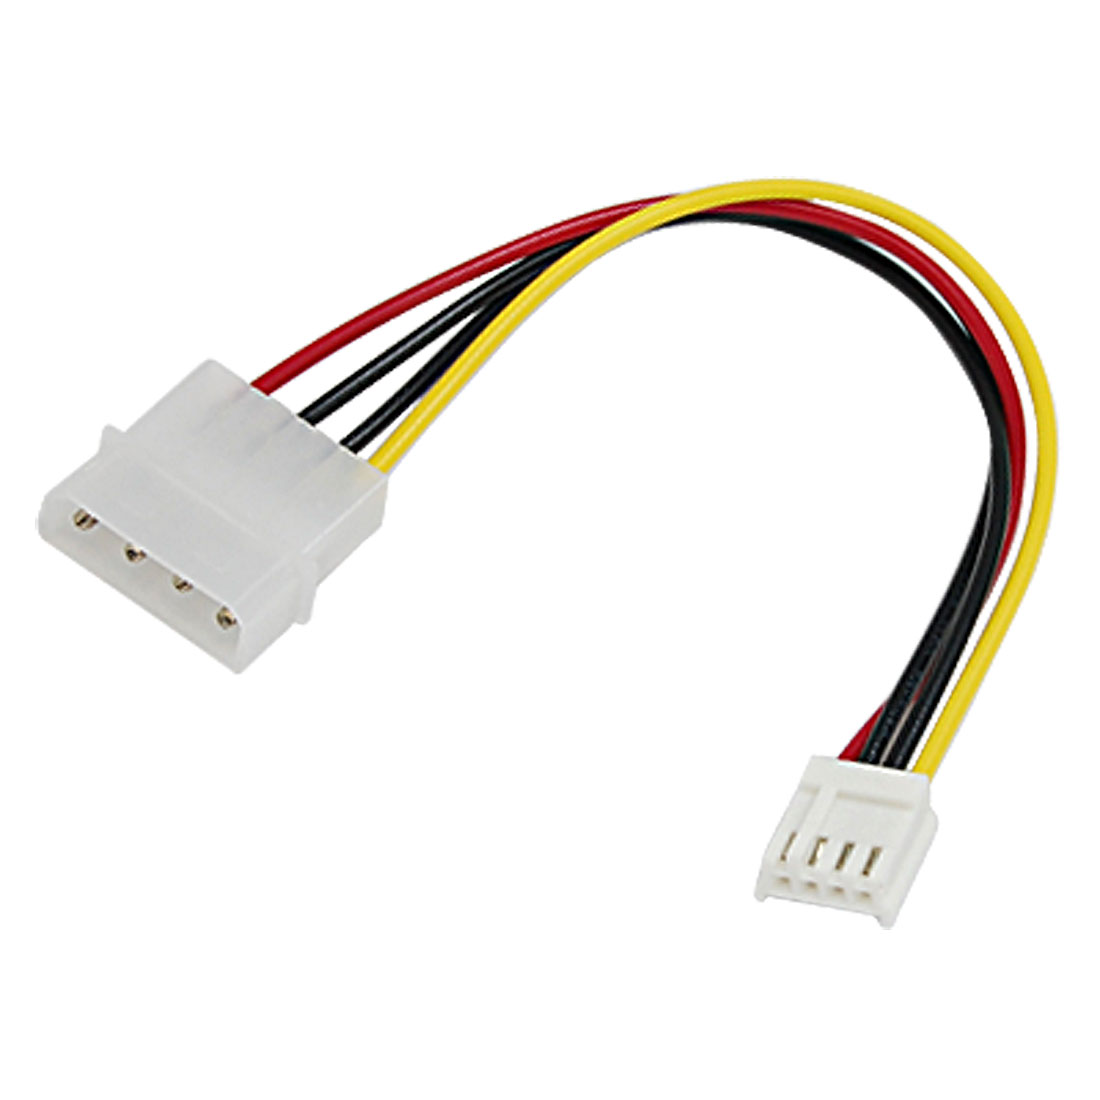 Internal PC Power Splitter Cable 5.25 inch to 3.5 inch